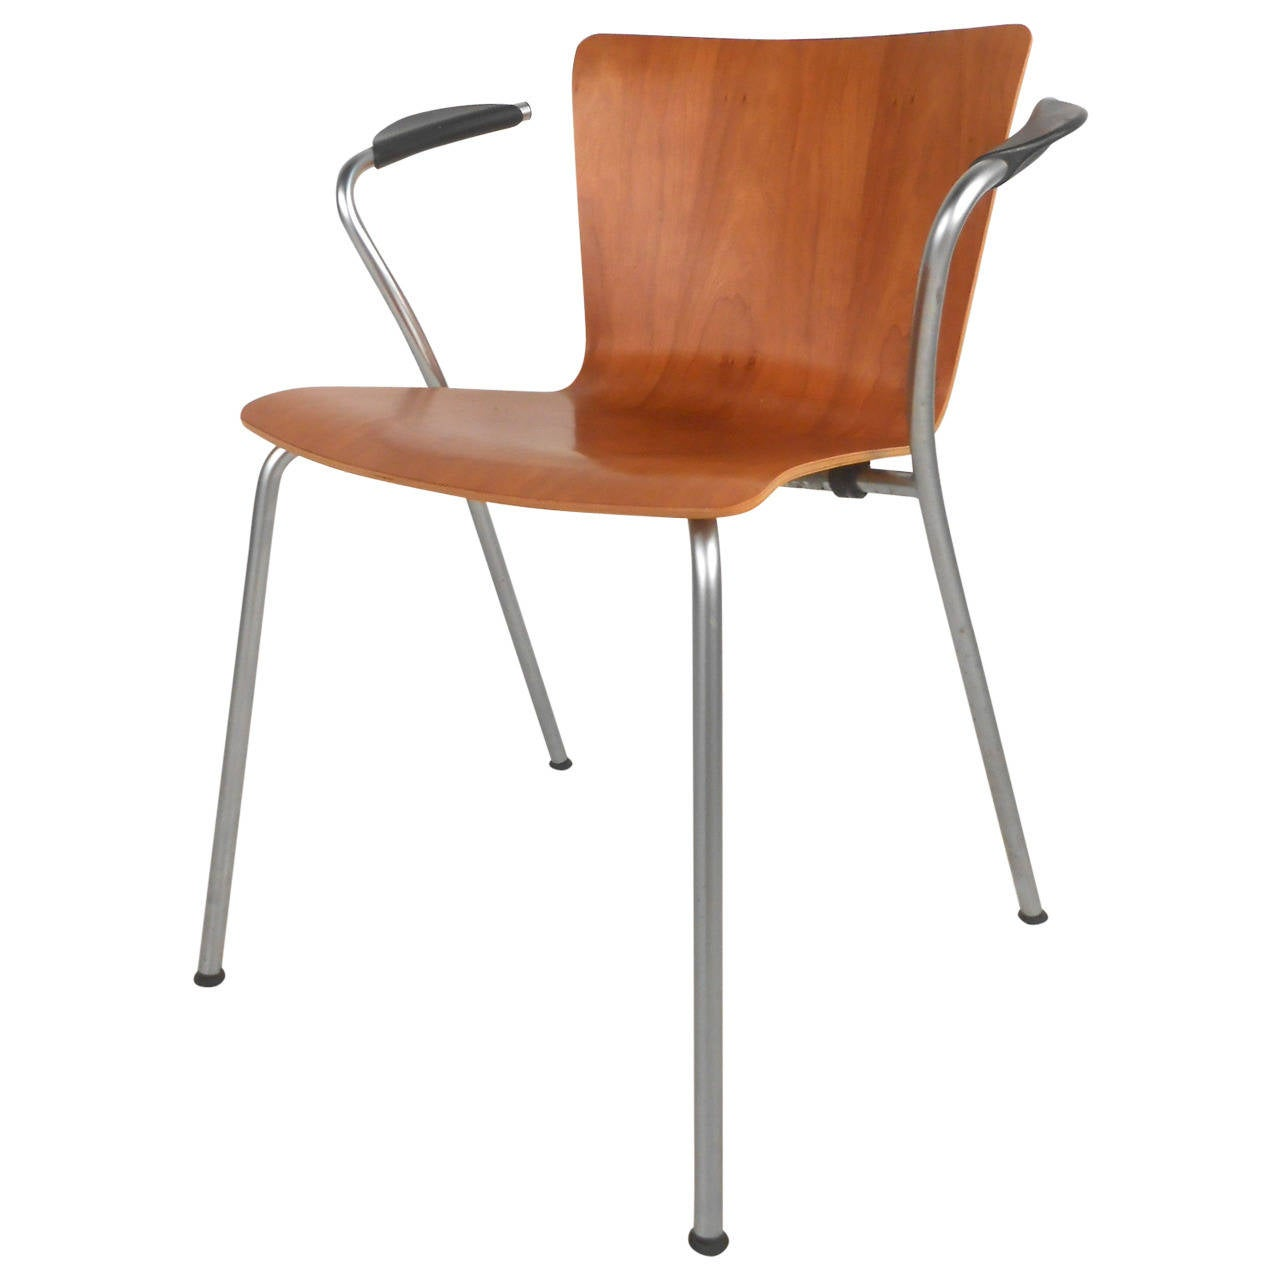 VicoDuo Chair By Vico Magistretti For Fritz Hansen And Knoll Studio For Sale